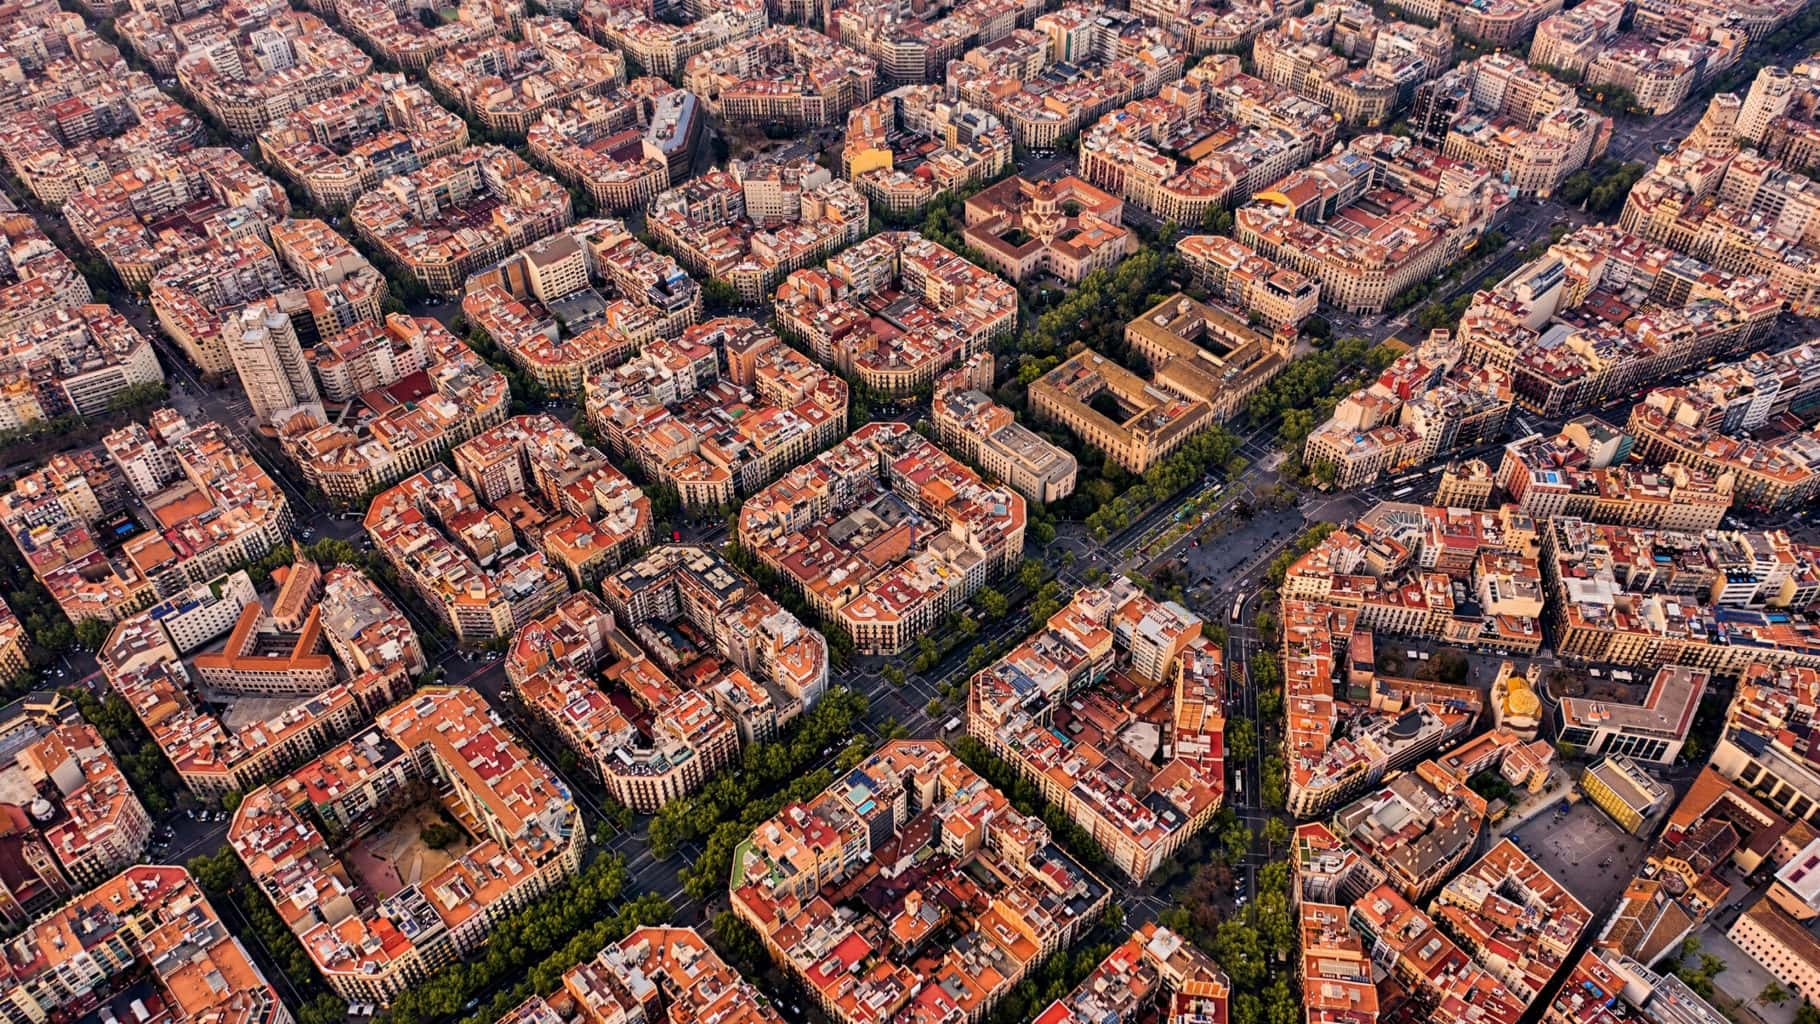 Barcelona University from above